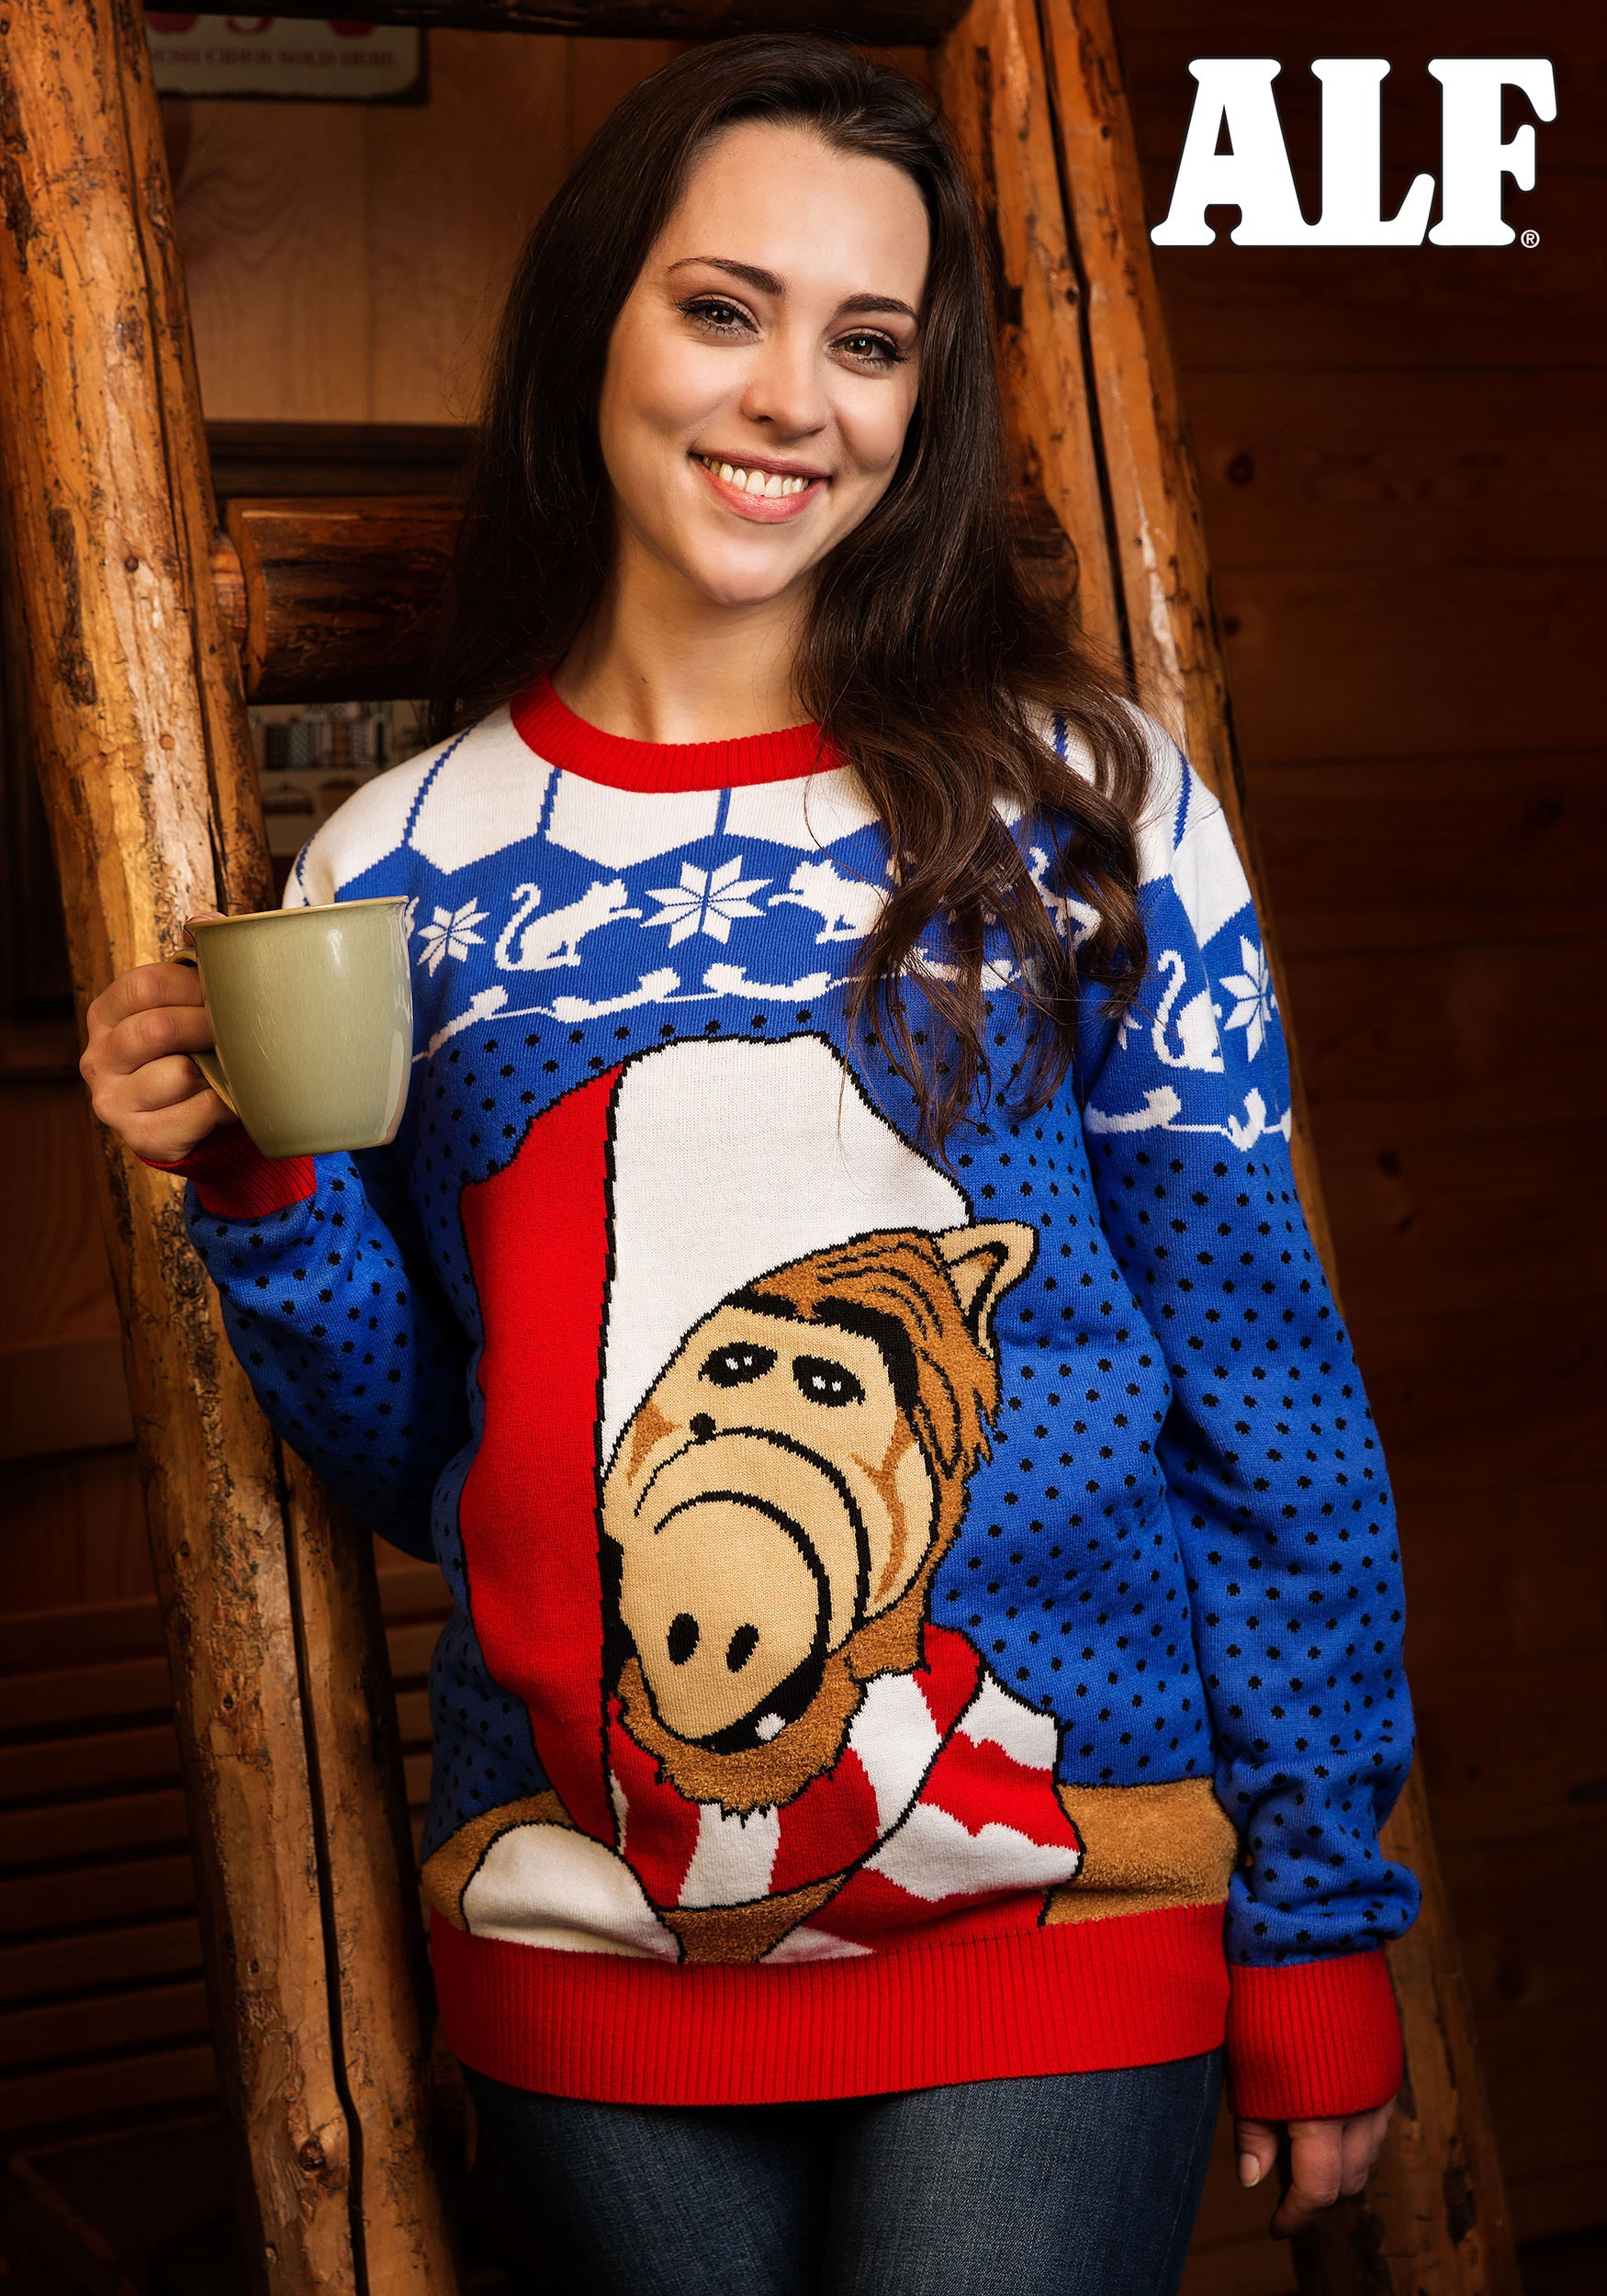 Alf Christmas Jumper